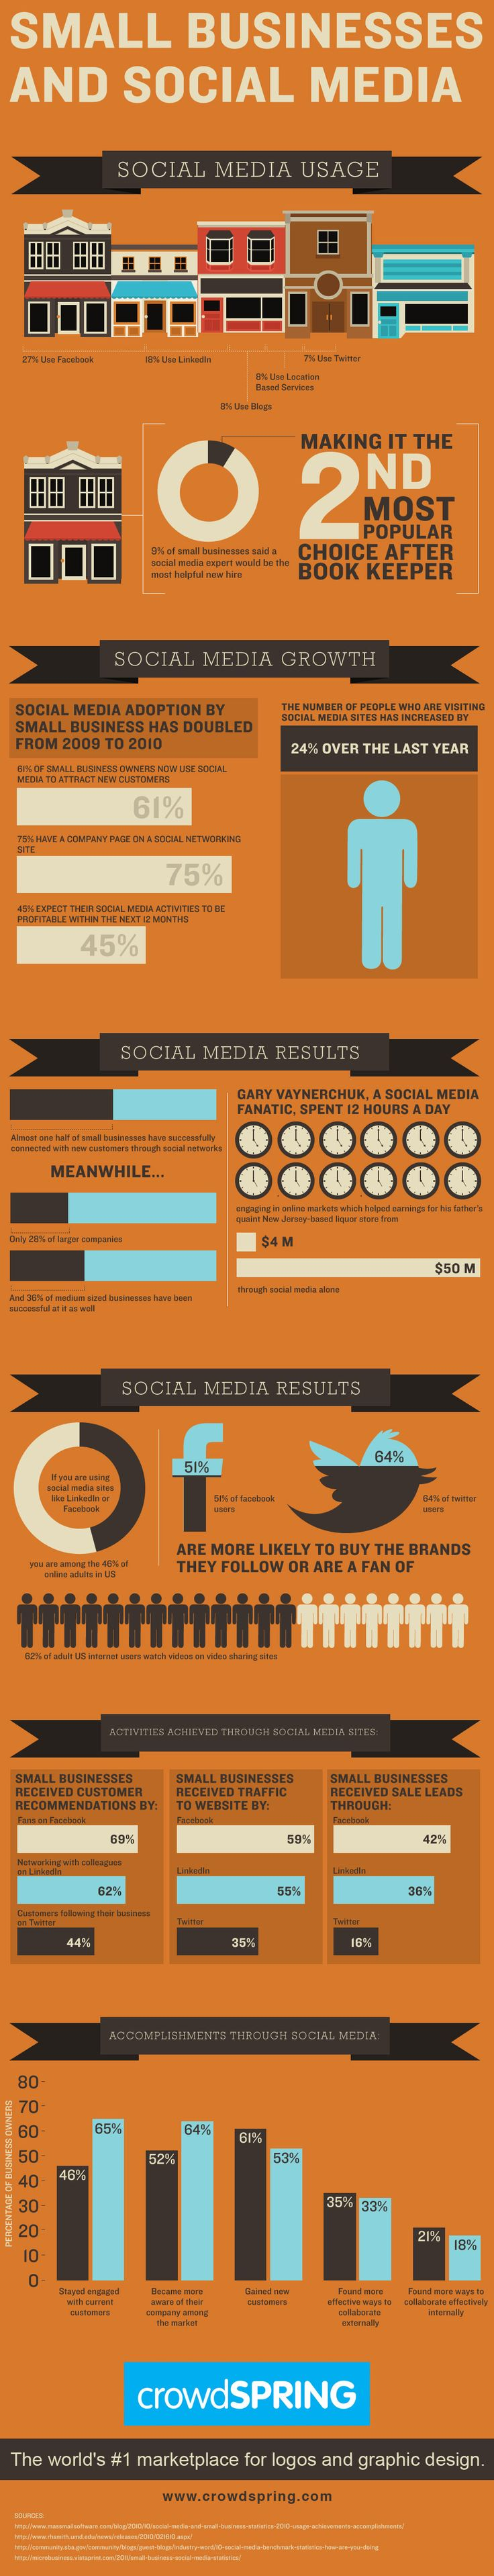 Small Business Use of Social Media is Growing Fast [infographic]